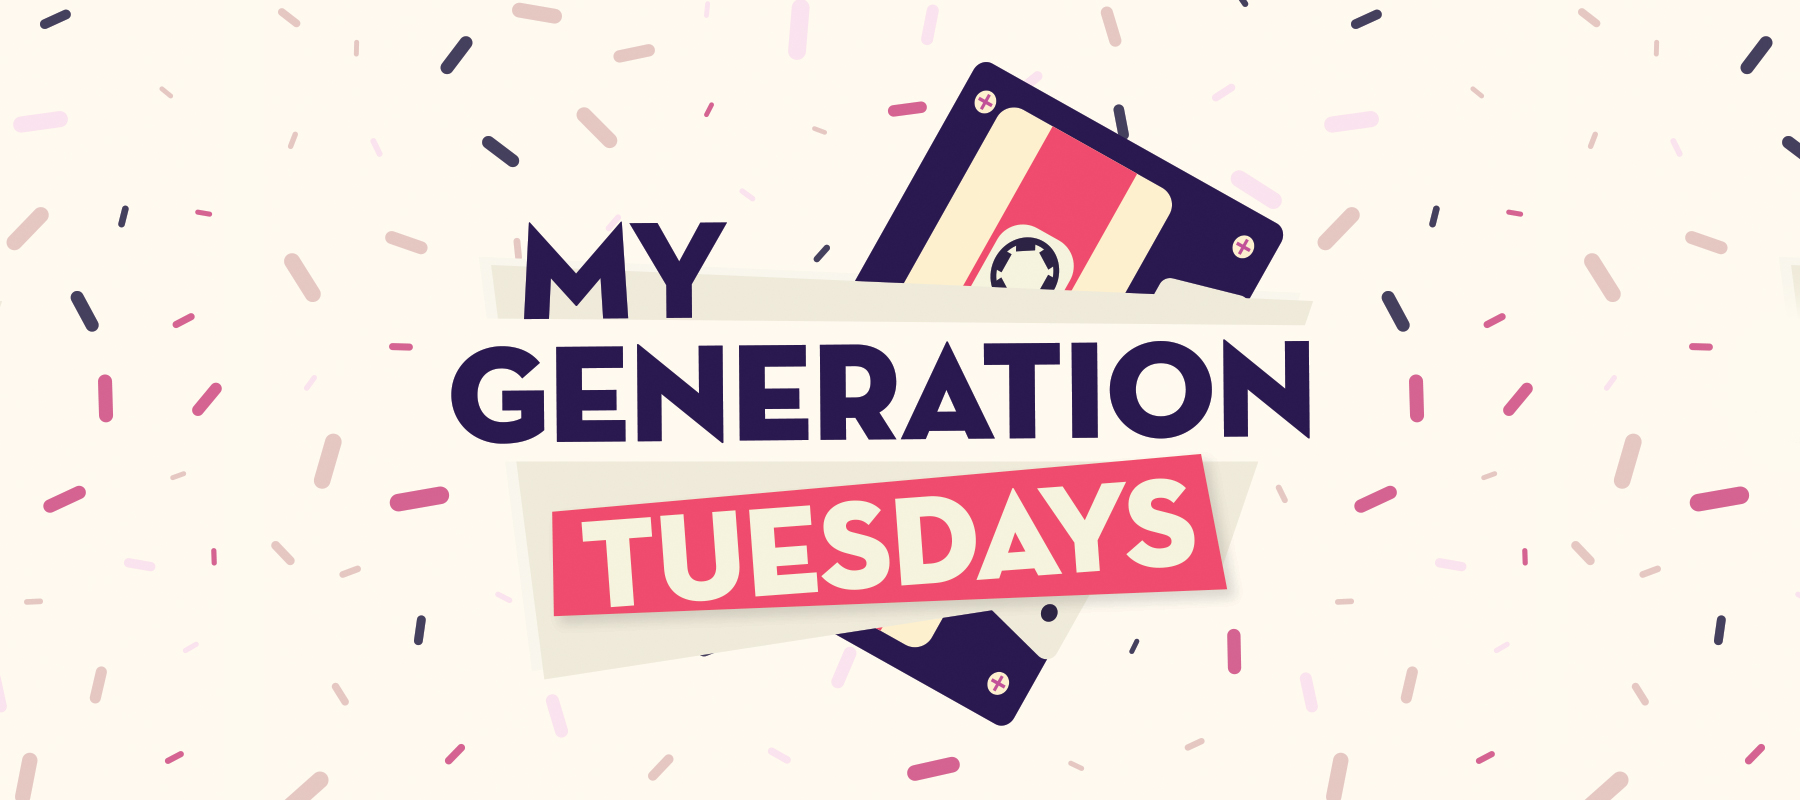 My Generation Tuesday